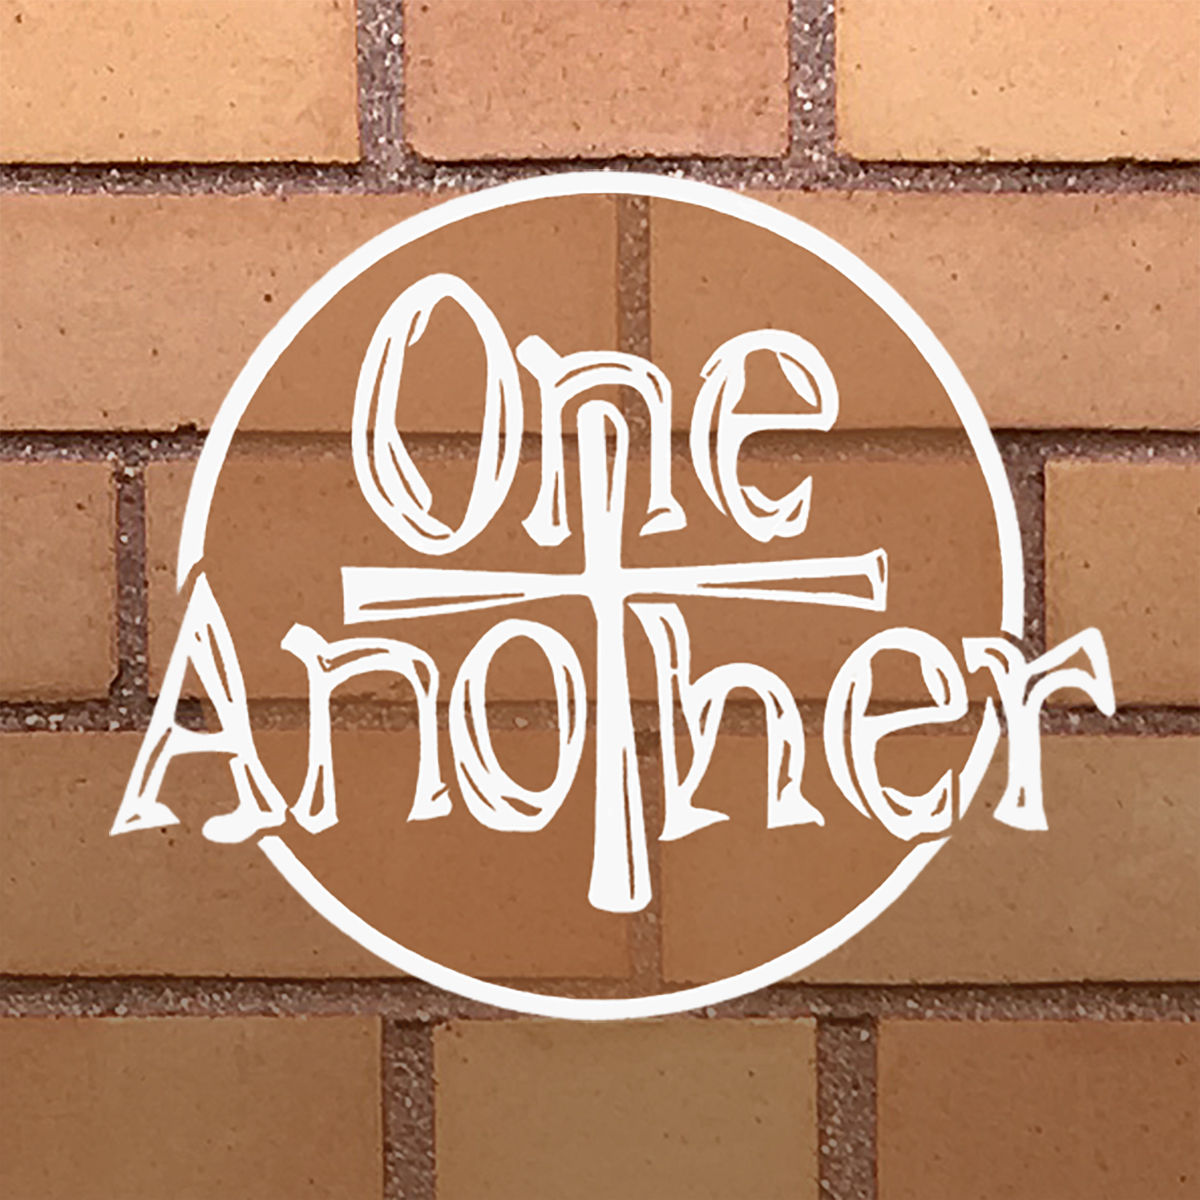 15-one-another.jpg